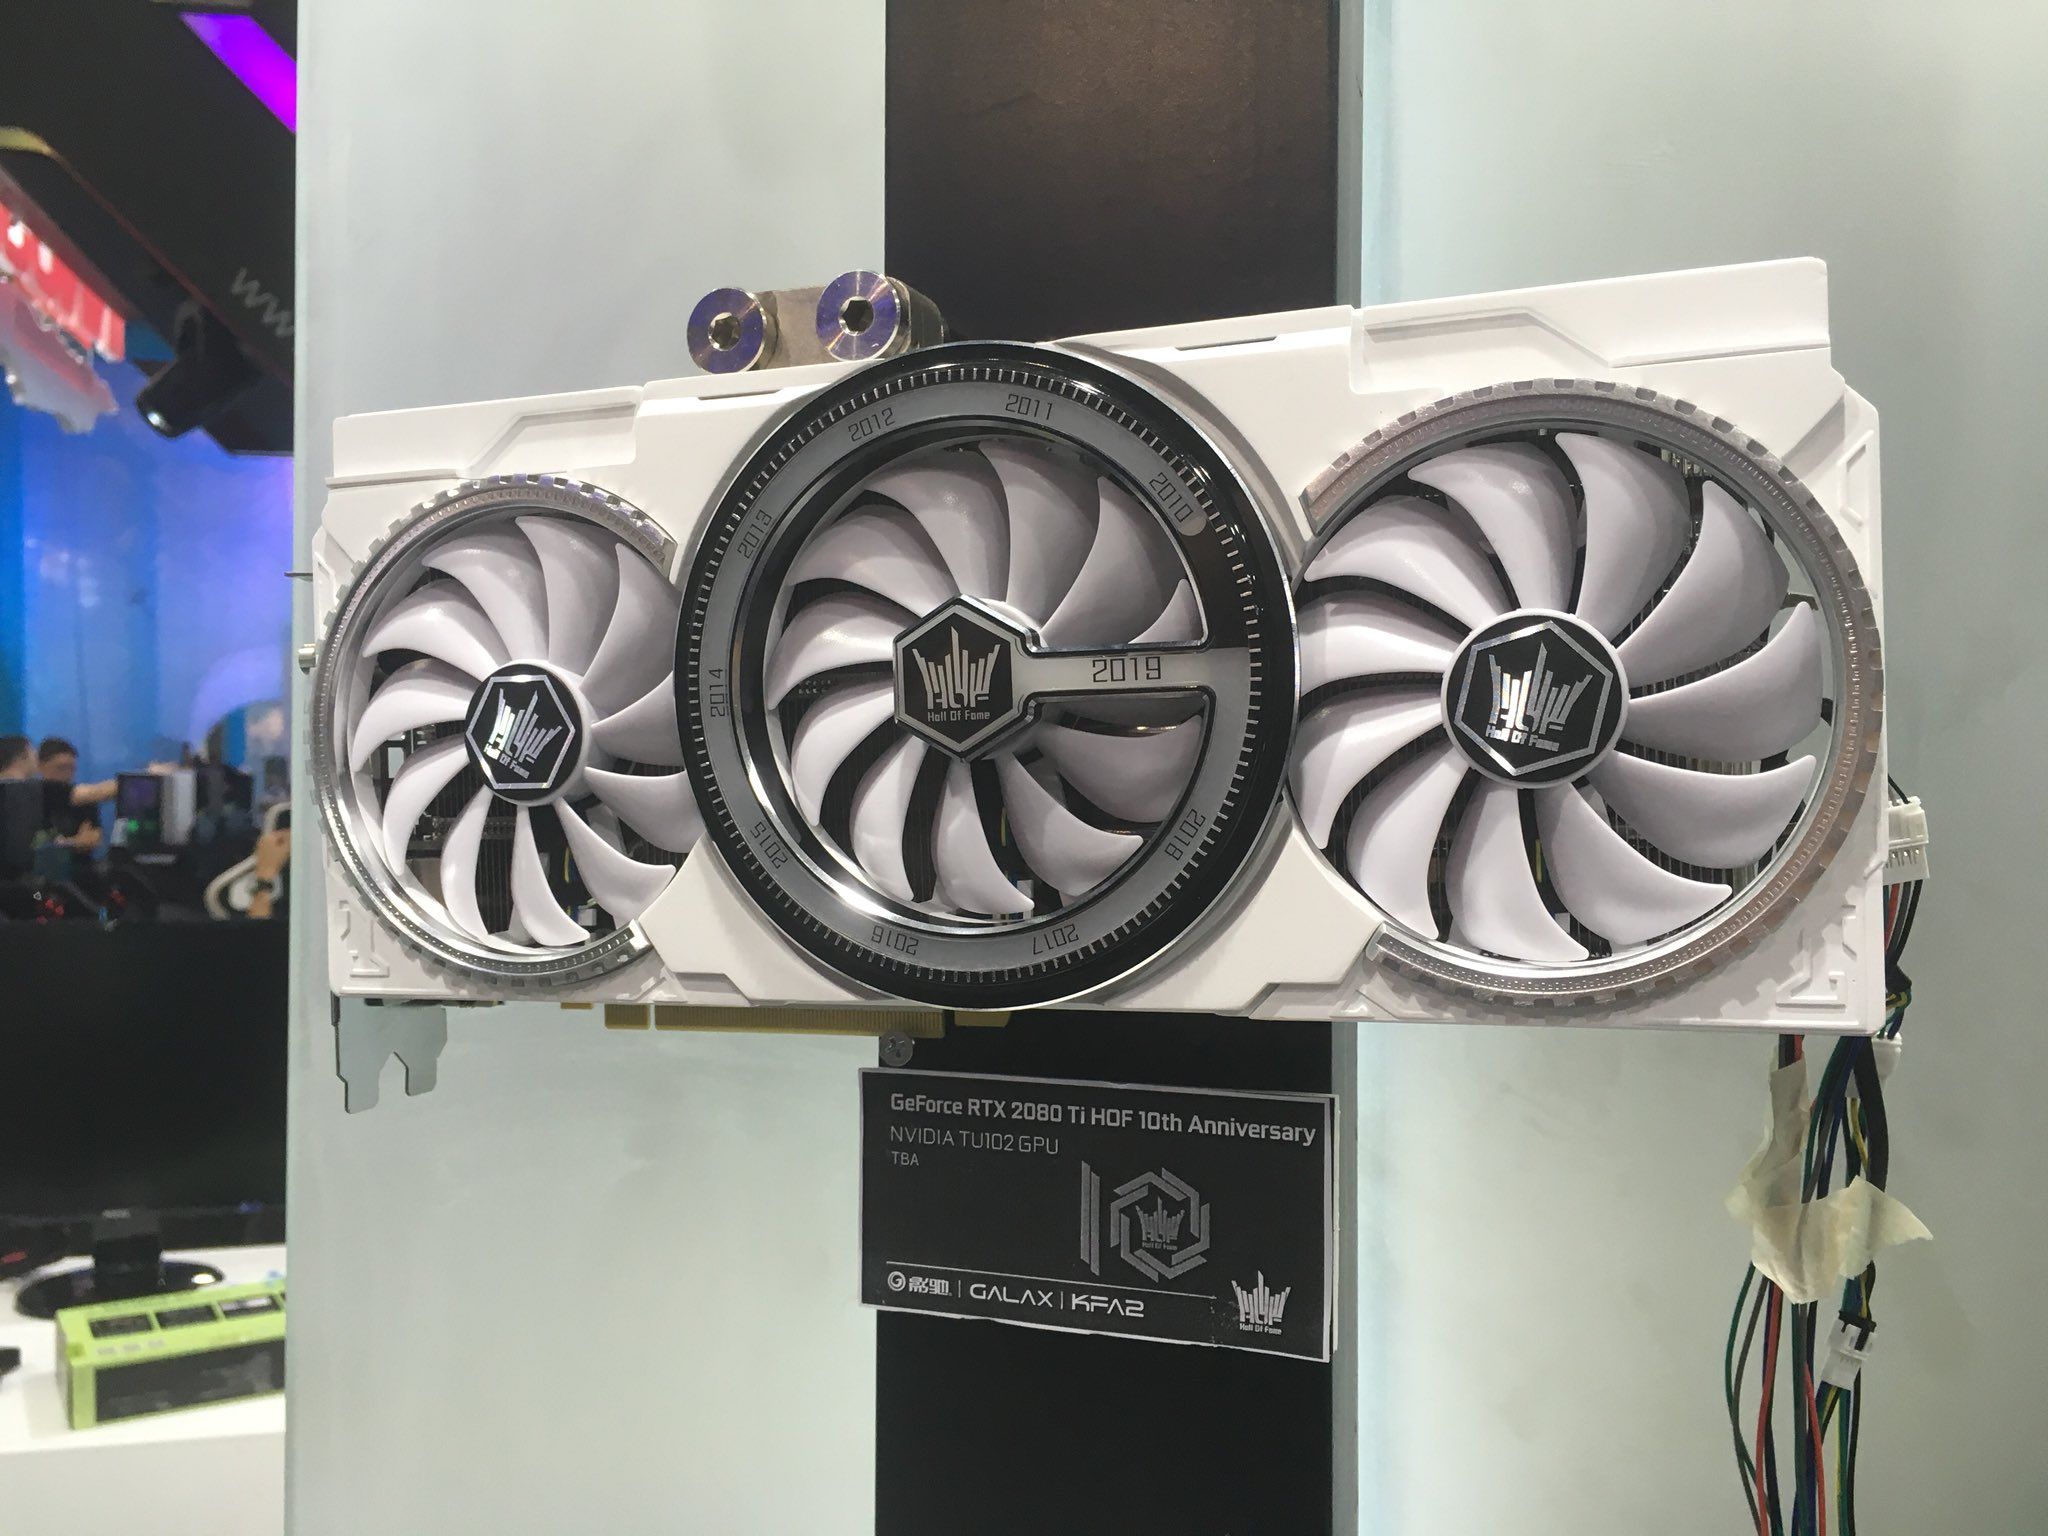 Media asset in full size related to 3dfxzone.it news item entitled as follows: Galax mostra la video card GeForce RTX 2080 Ti HOF 10th Anniversary | Image Name: news29634_Galax-GeForce-RTX-2080-Ti-HOF-10th-Anniversary_1.jpg